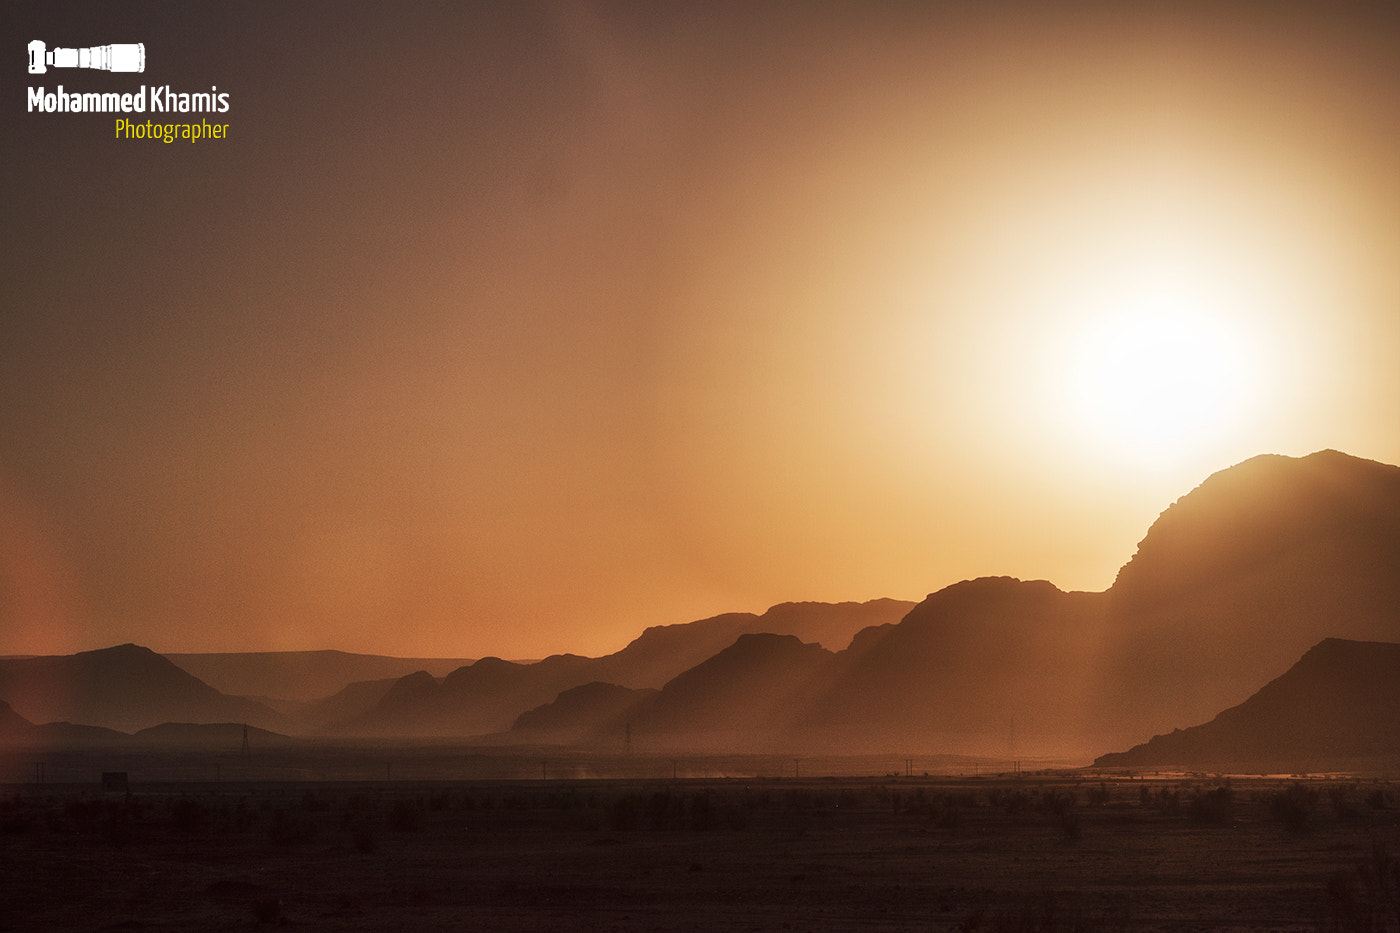 Photograph Wadi Rum by MOHAMMED KHAMIS on 500px